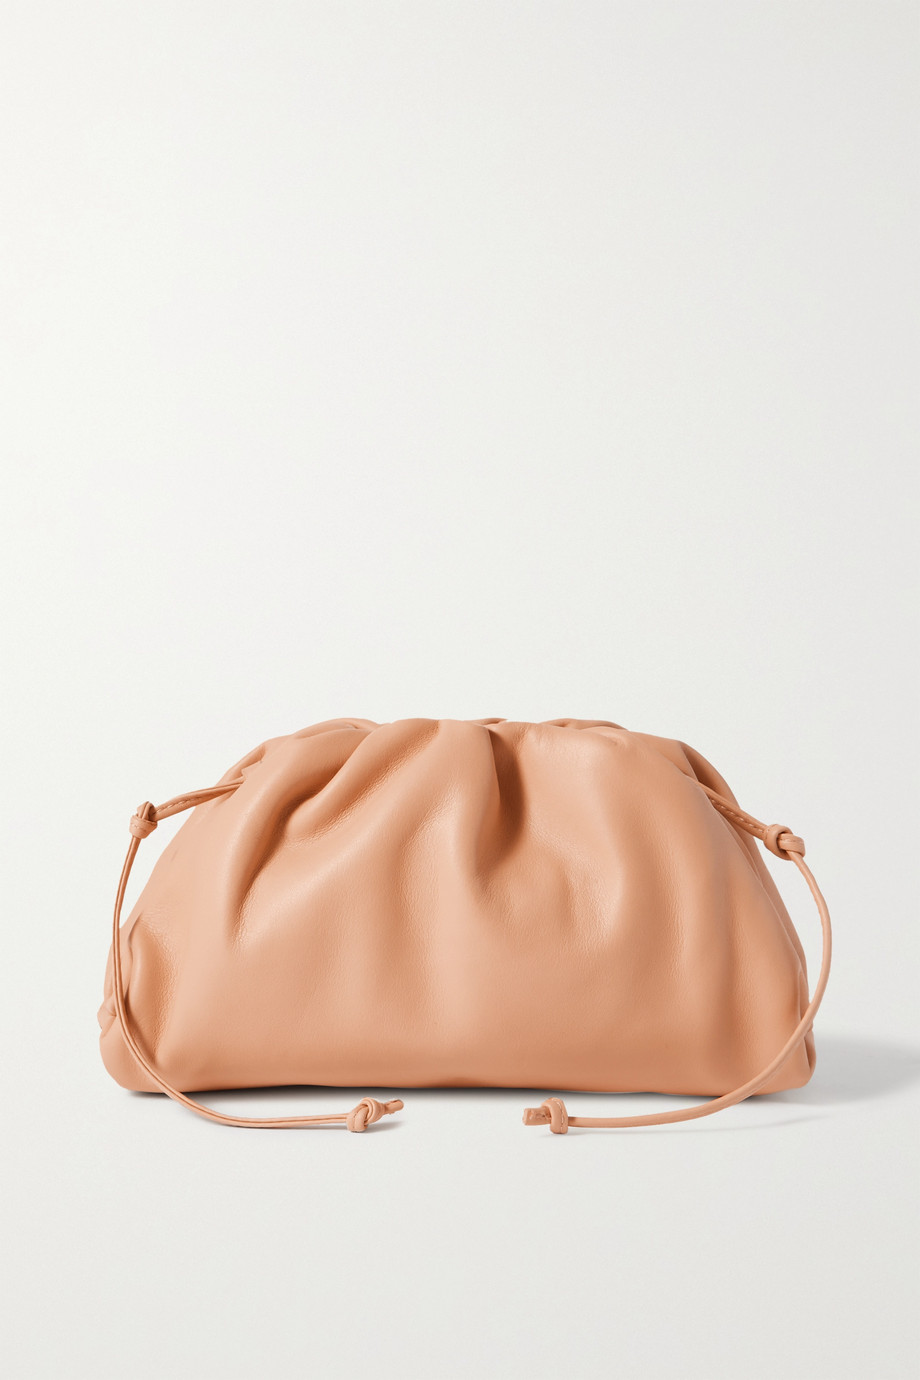 BOTTEGA VENETA The Pouch small gathered leather clutch